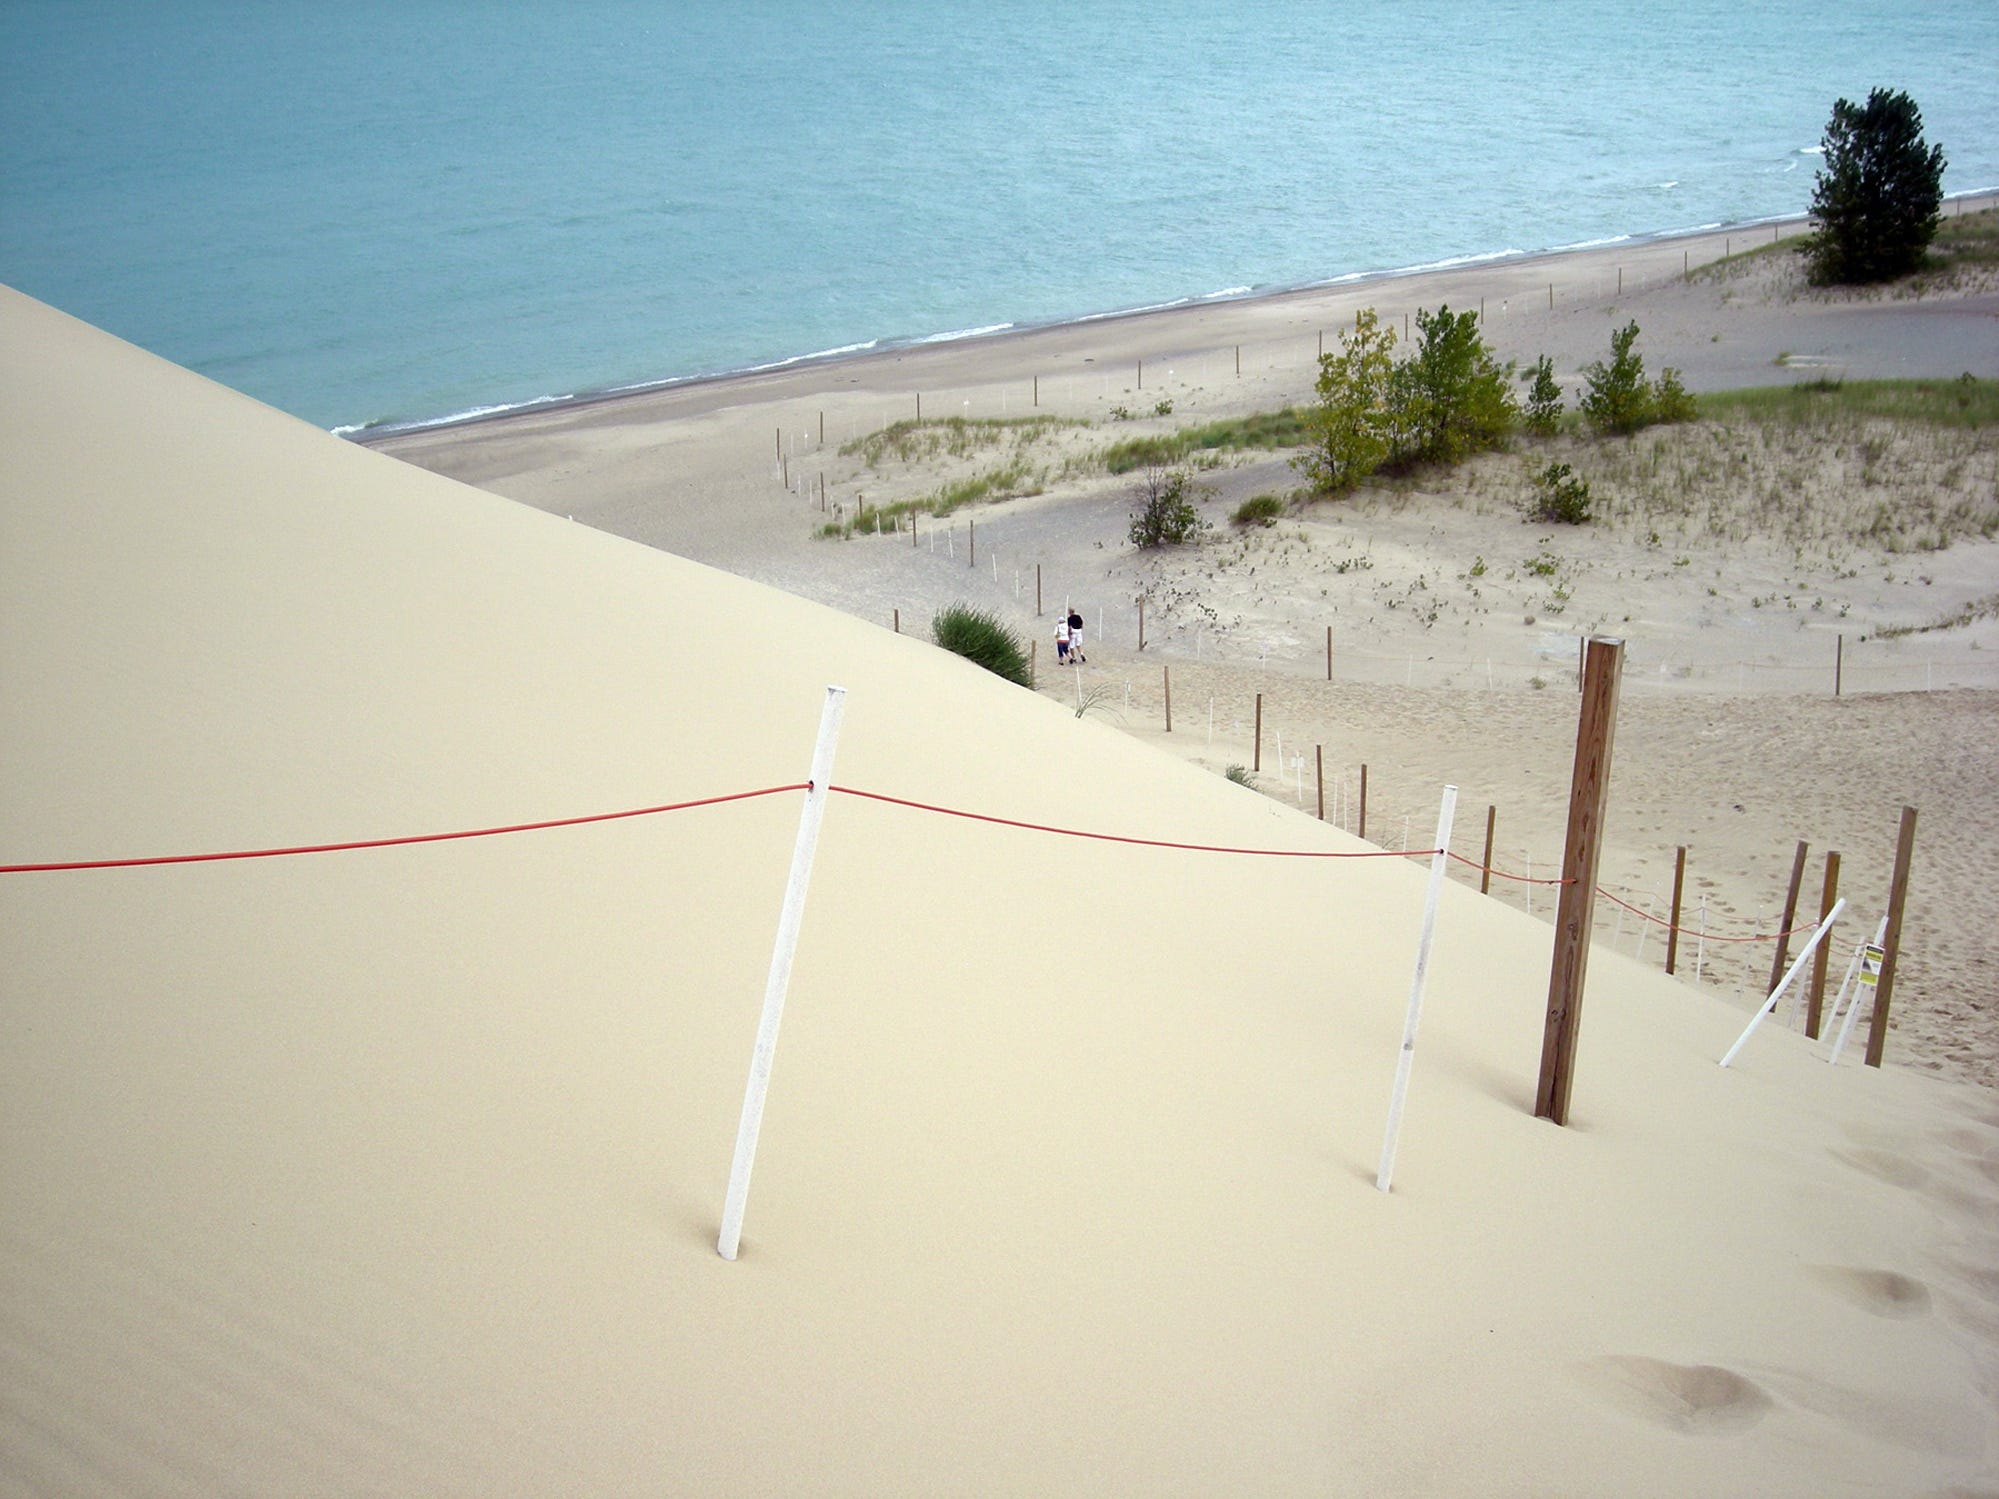 Geologists marked found another hole in Mount Baldy dune, measuring 7 inches wide and about 4-1/2 feet deep. Mount Baldy stands at the eastern end of the Indiana Dunes National Lakeshore east of Gary, Indiana.